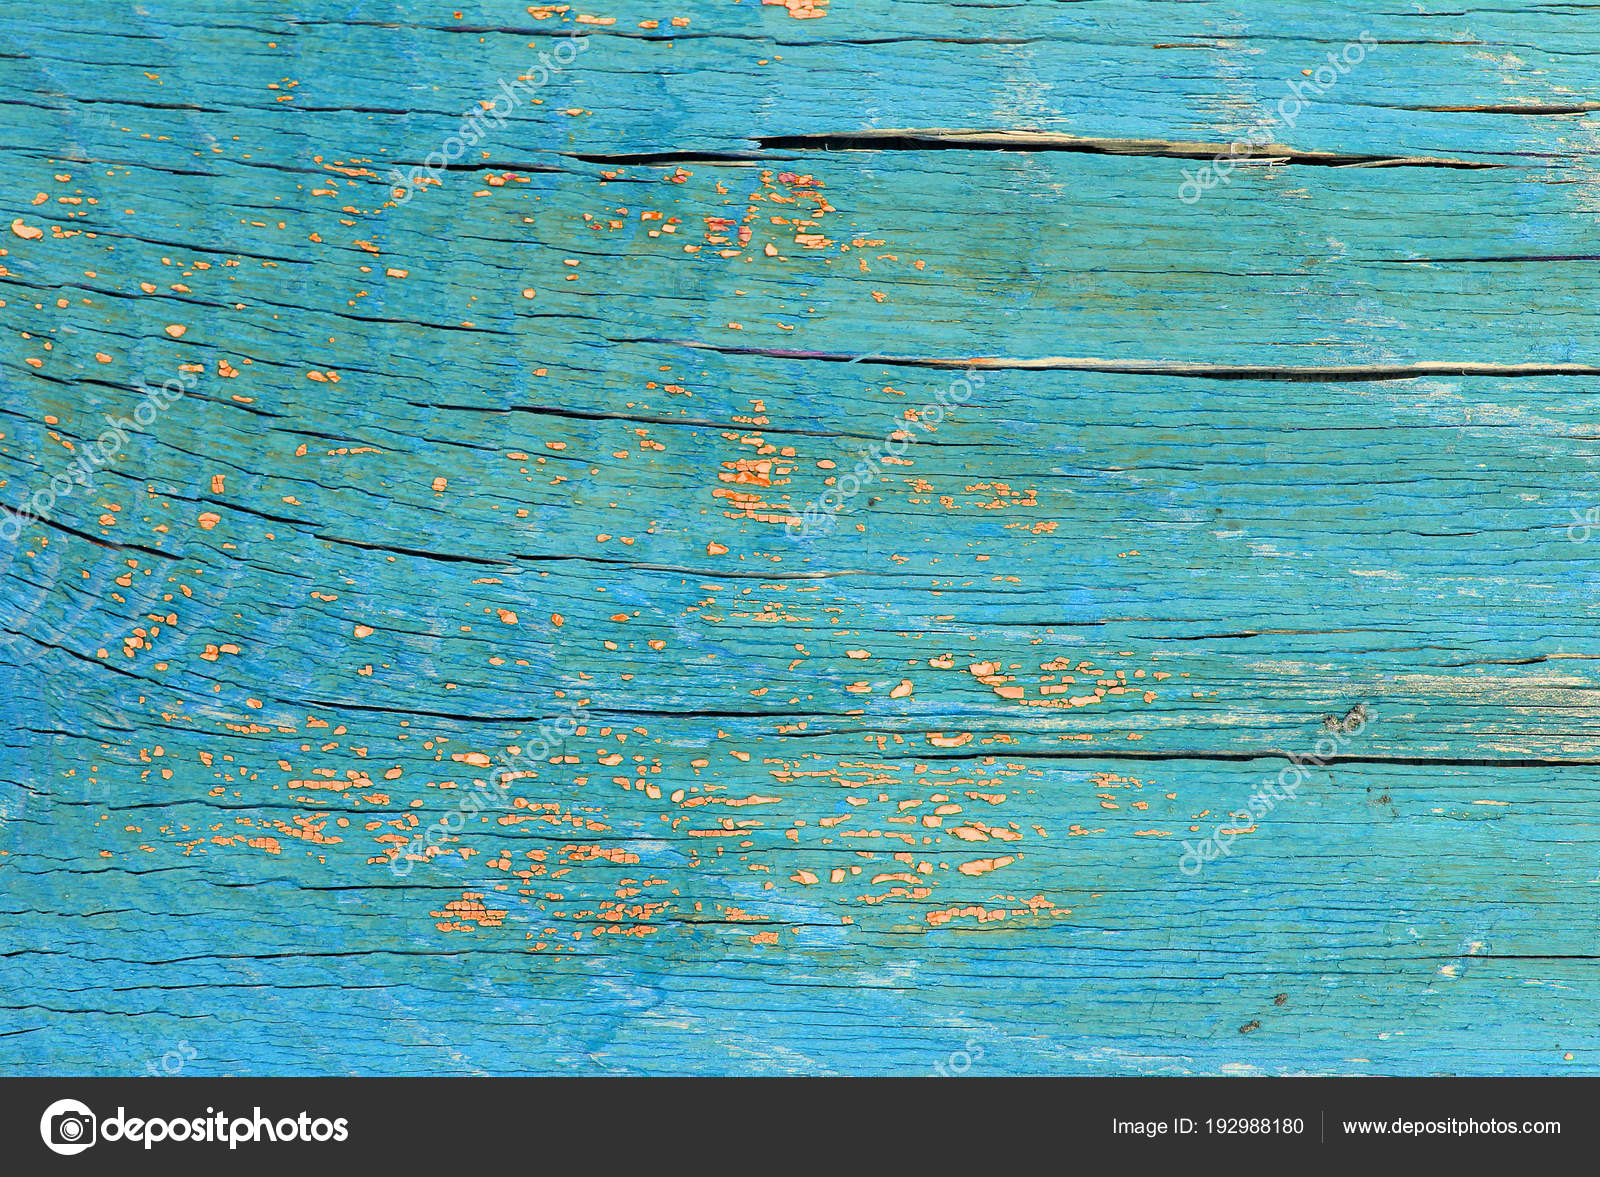 Old Wooden Background With Remains Of Pieces Scraps Paint On Wood Texture An Tree Board Vintage Peeling